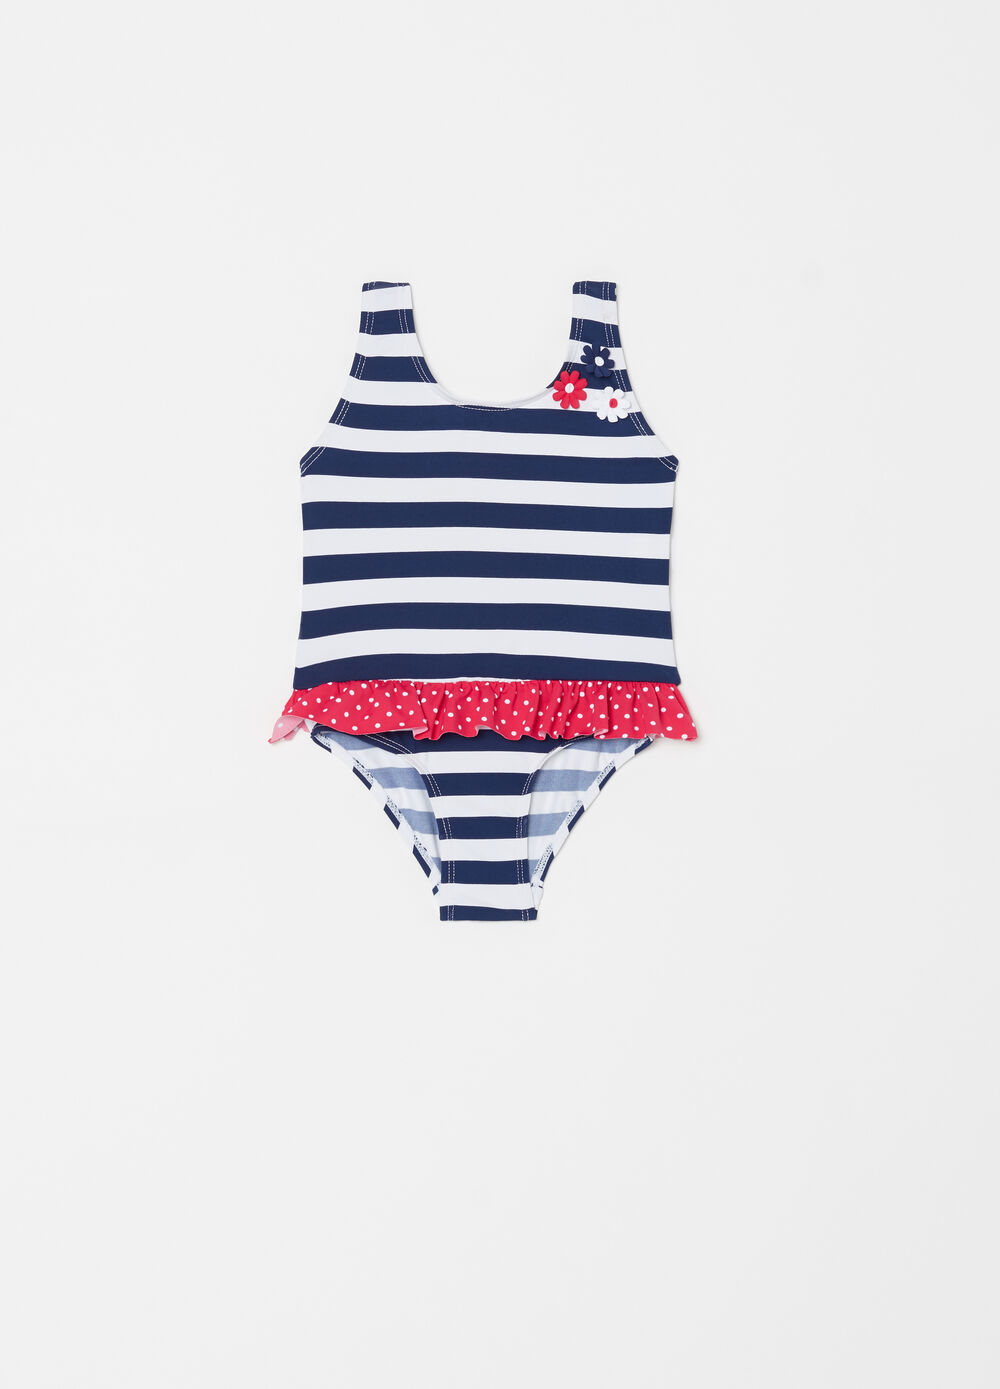 One-piece swimsuit with flowers, frills, stripes and polka dots